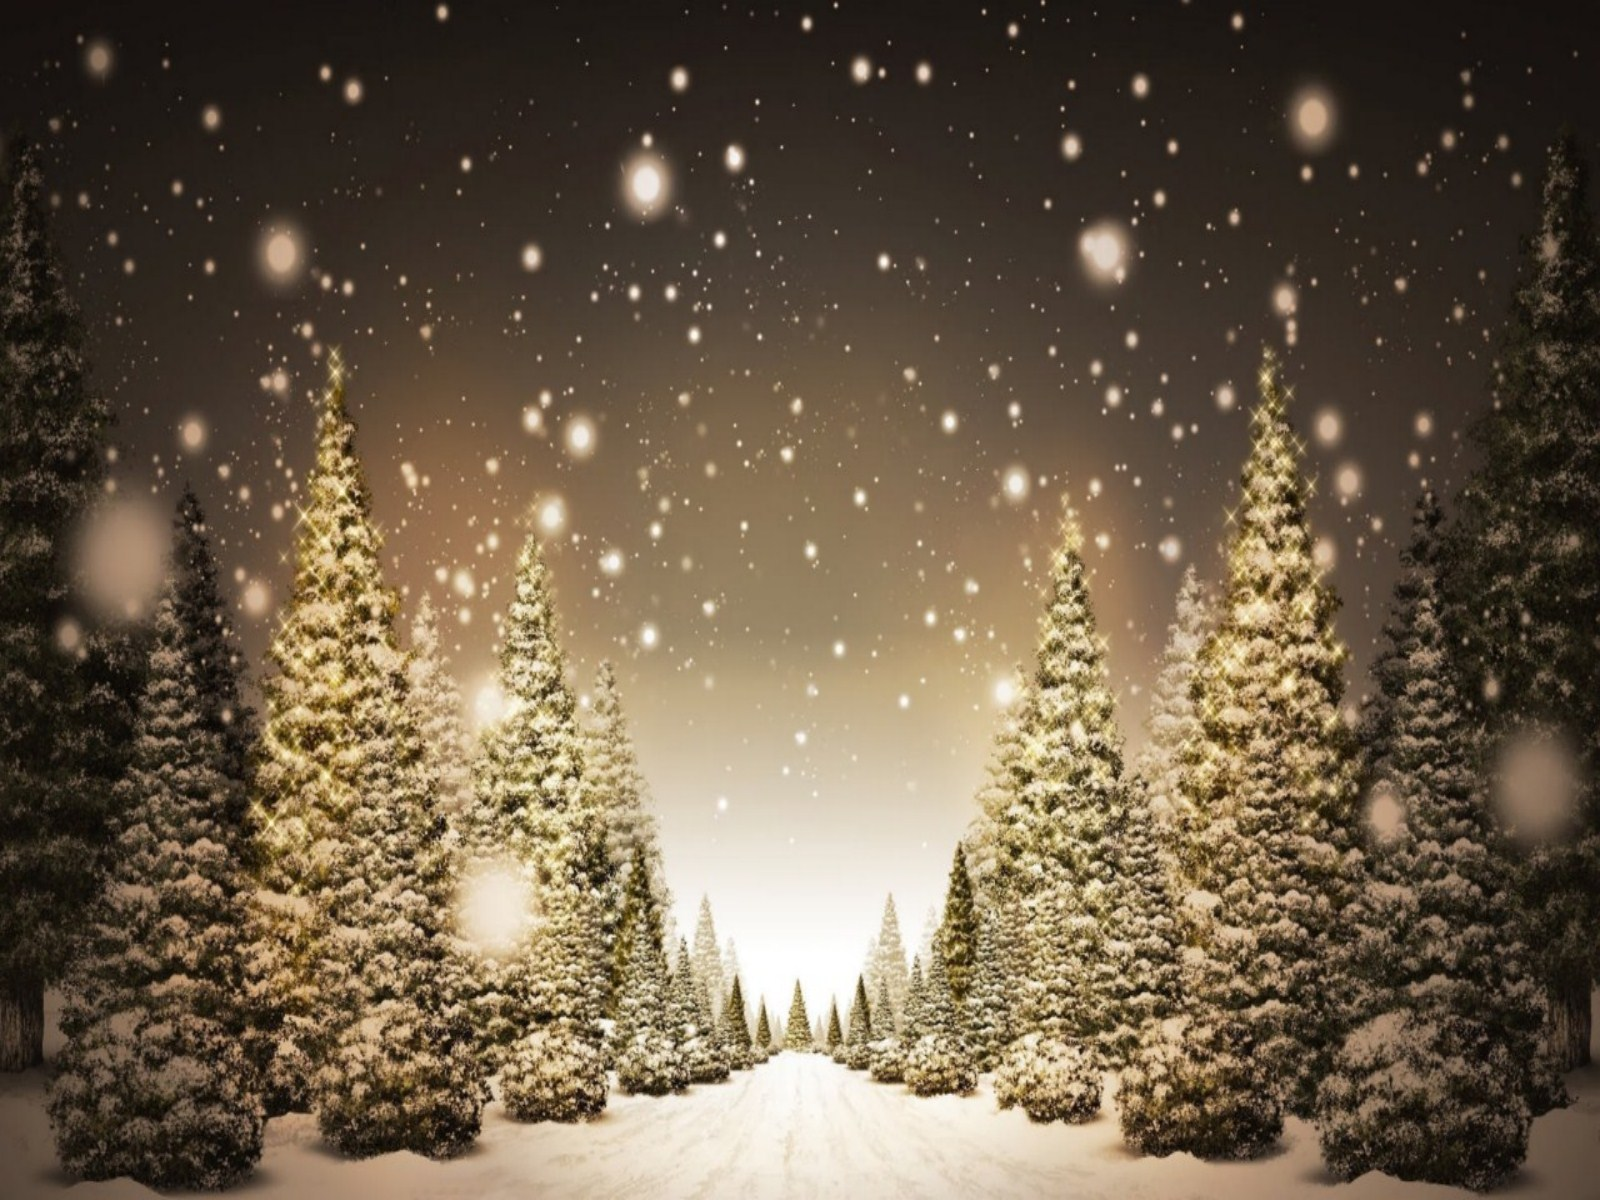 Christmas Tree Widescreen Wallpaper